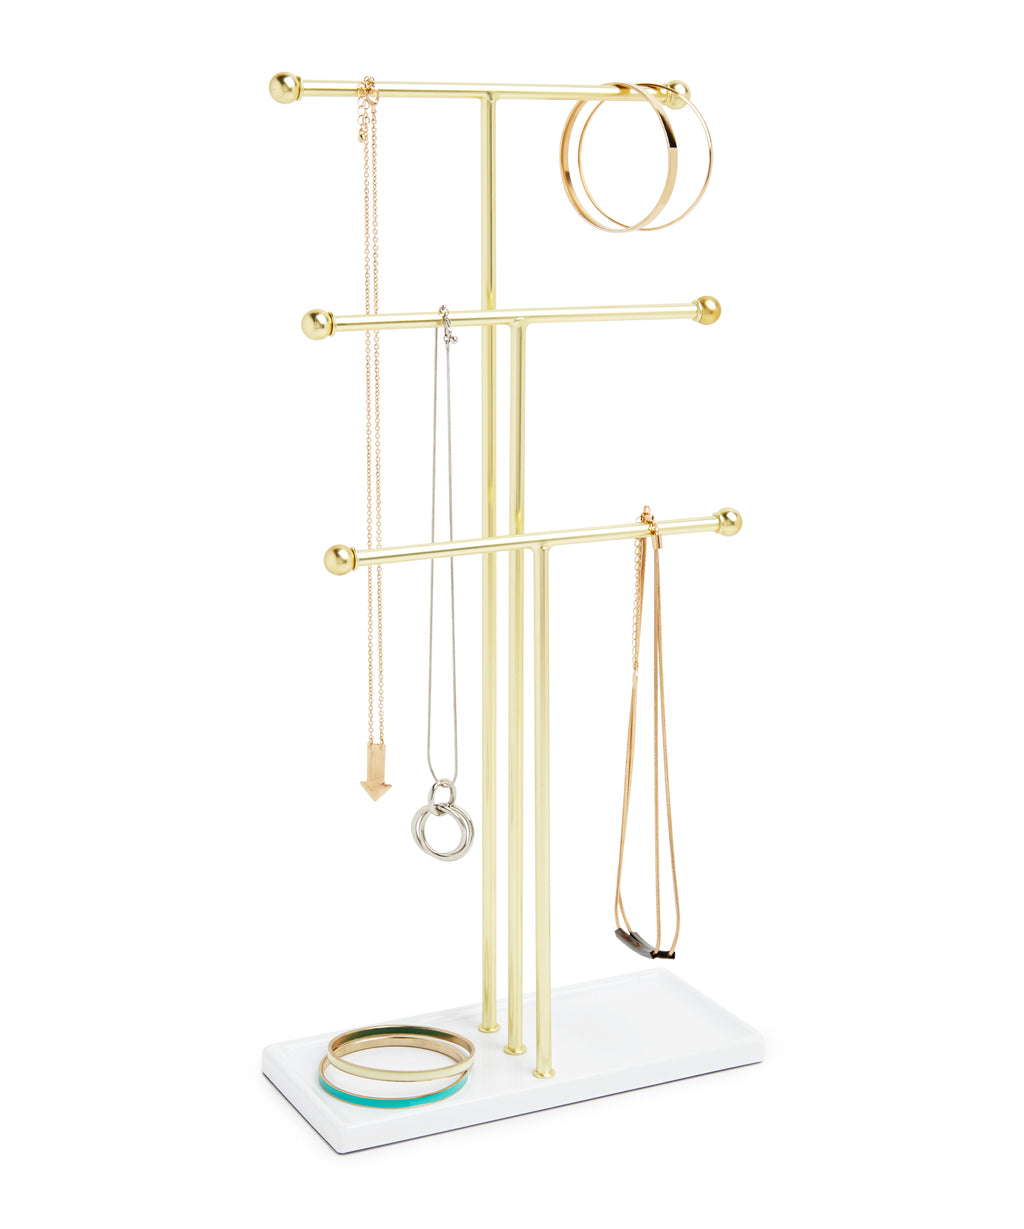 HANGING JEWELRY ORGANIZER – 3 TIER EXTRA TALL TABLETOP JEWELRY HOLDER picktookshop.myshopify.com [gogle] [sale] [online]